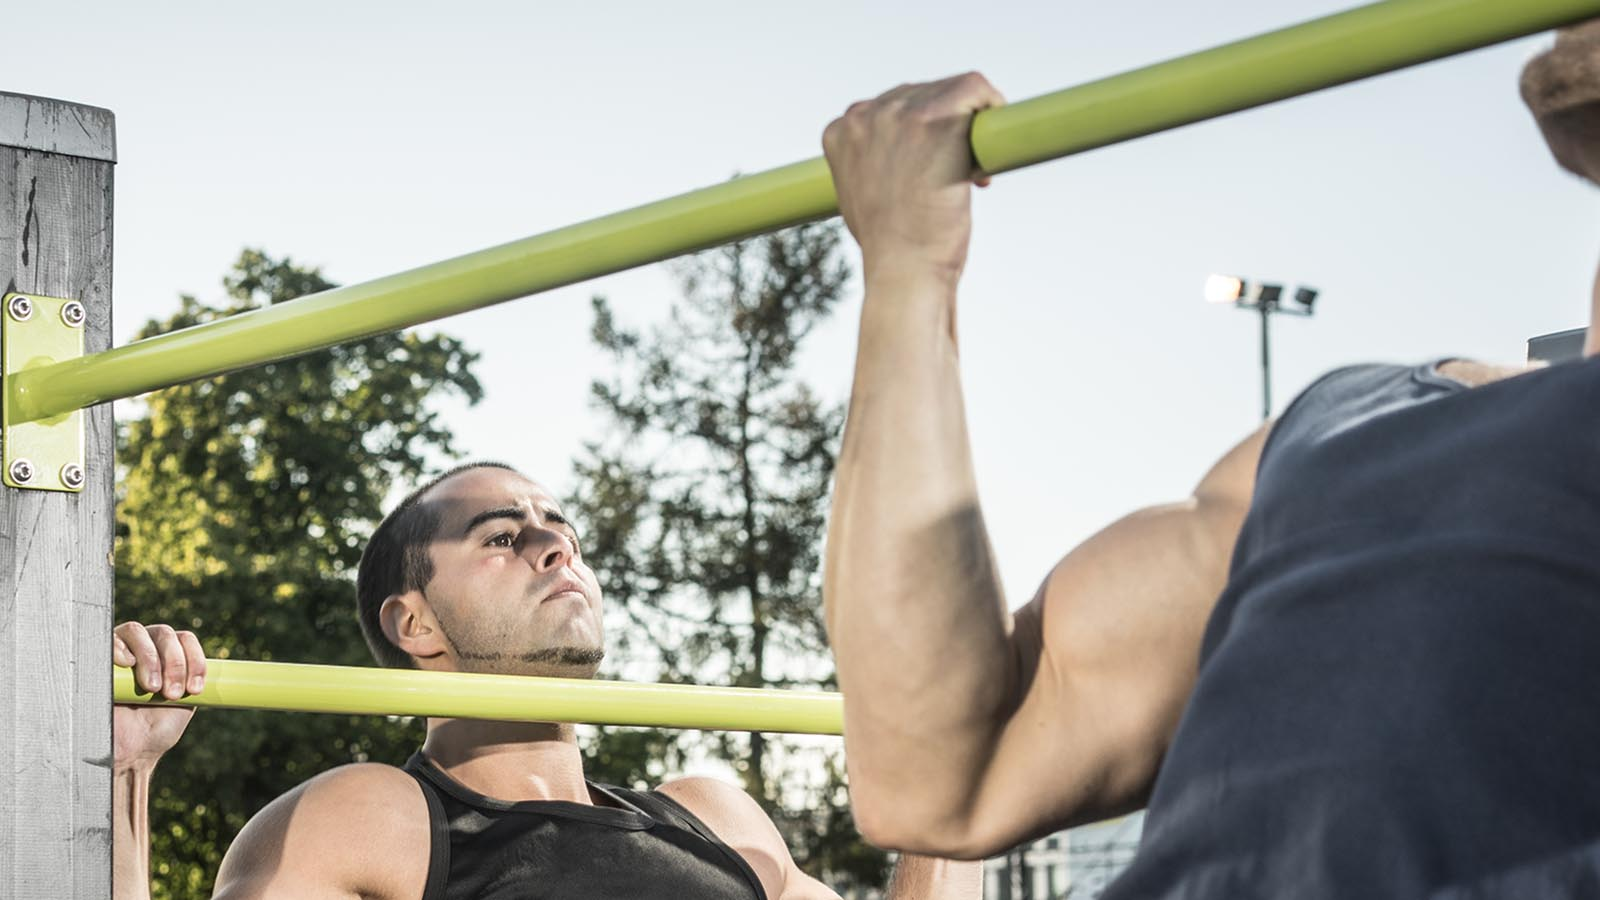 Street Workout Is The New Wave In Fitness Training